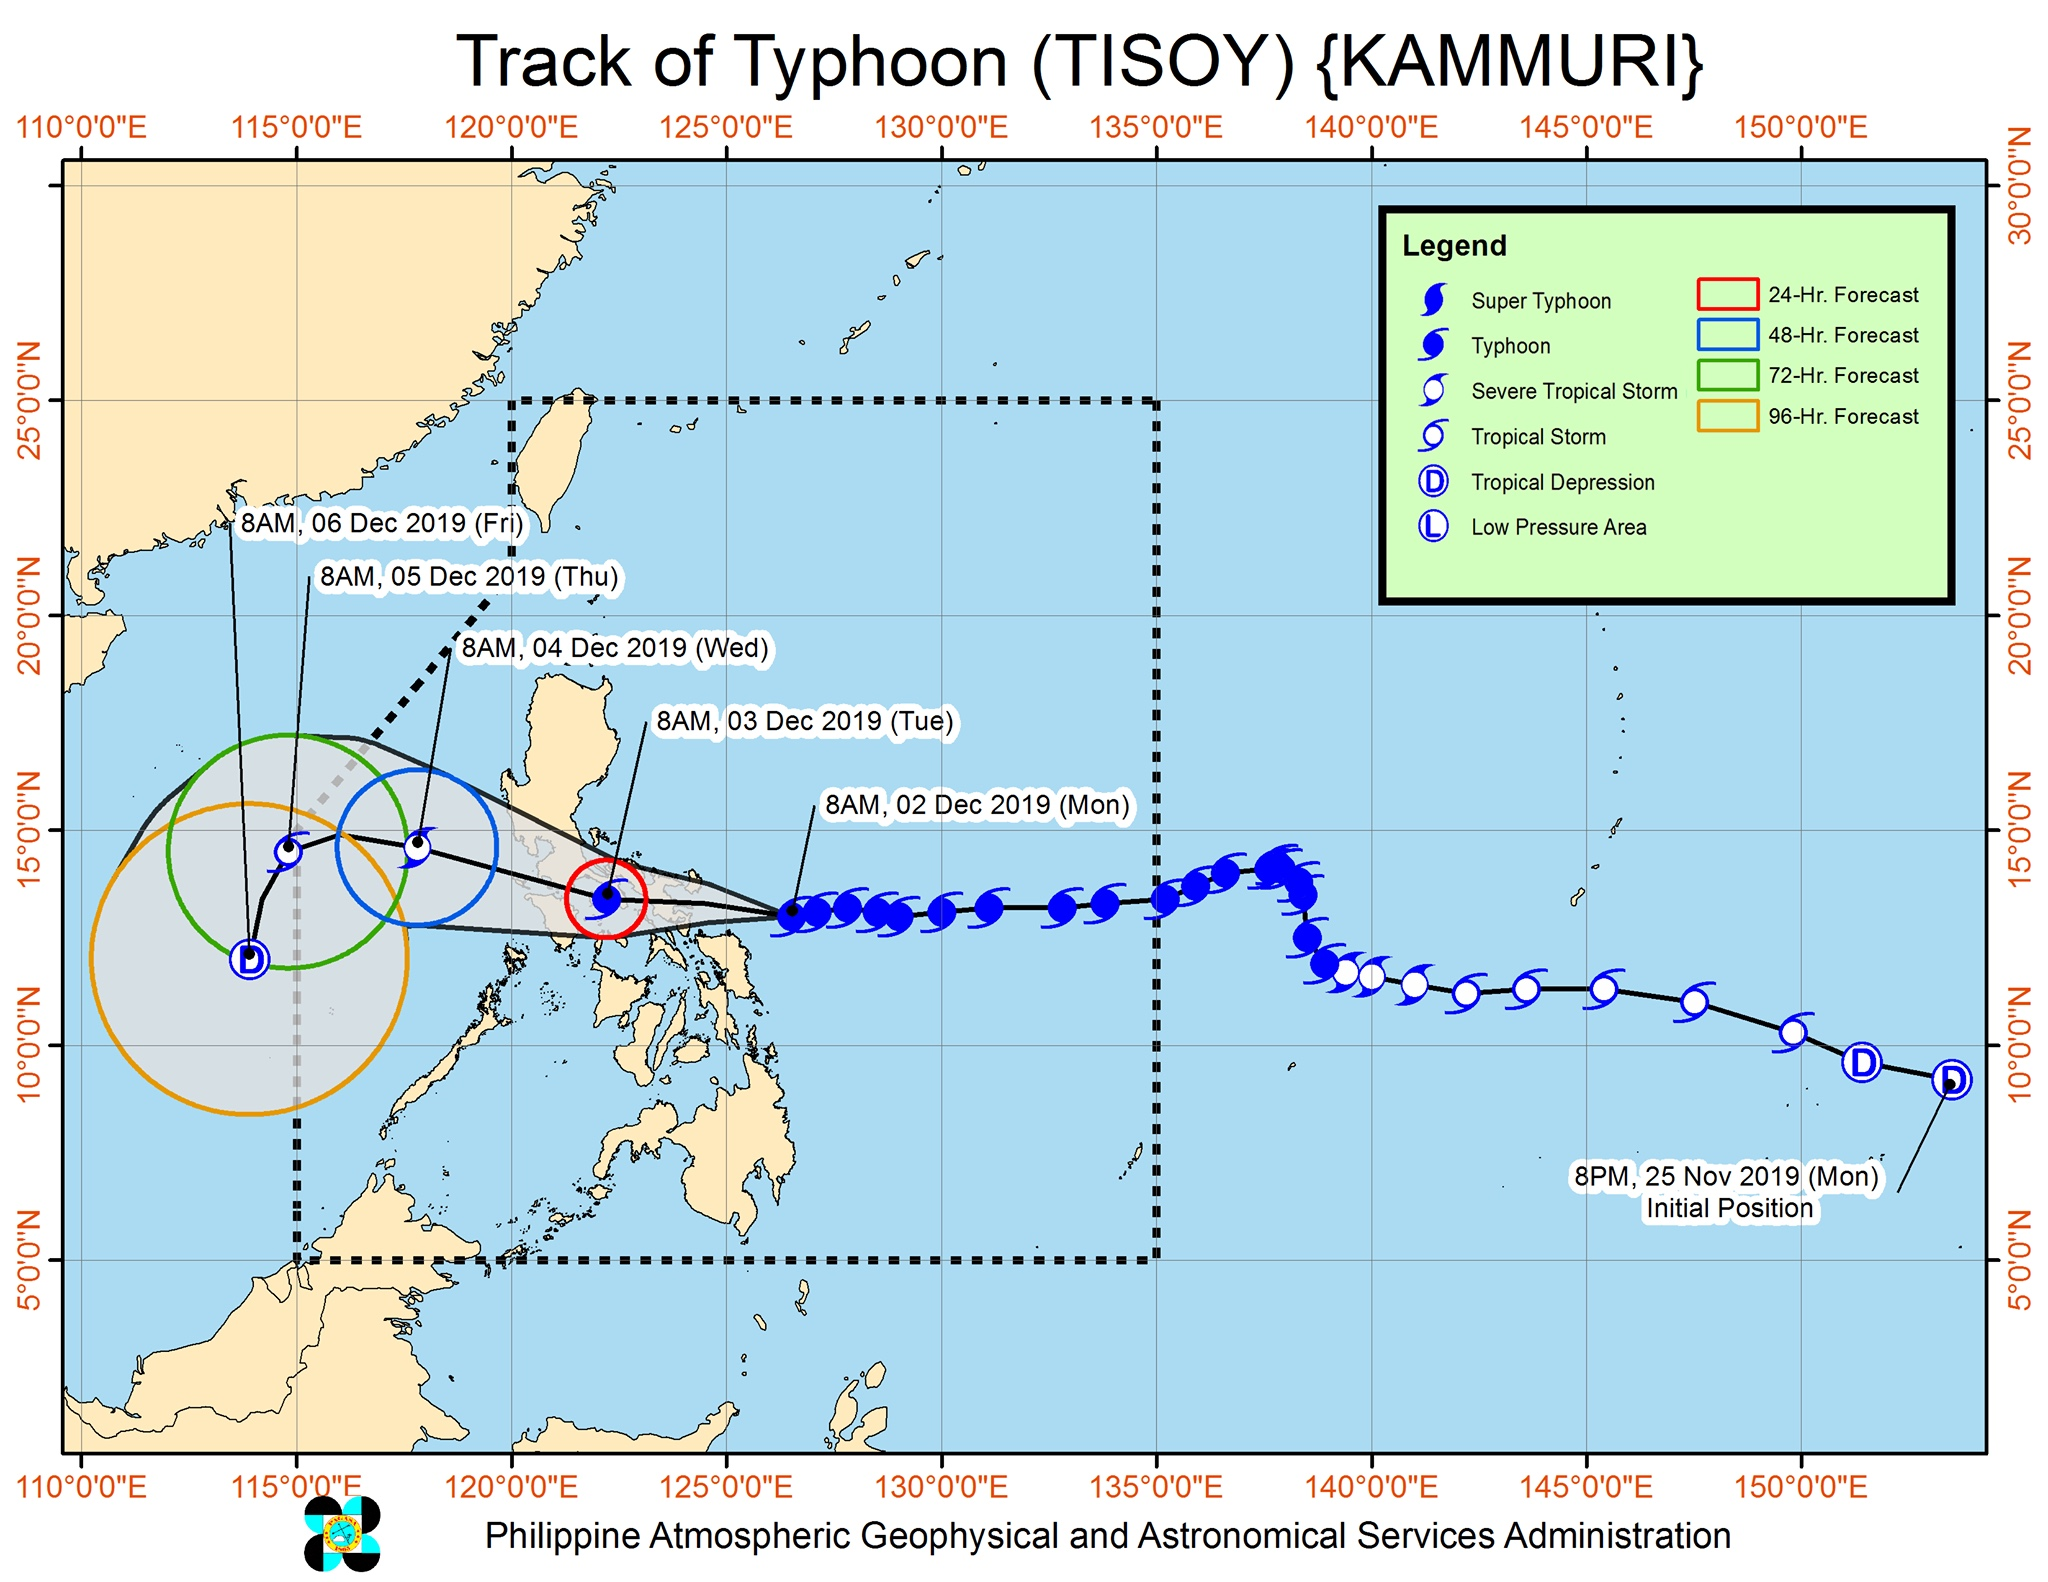 Forecast track of Typhoon Tisoy (Kammuri) as of December 2, 2019, 11 am. Image from PAGASA